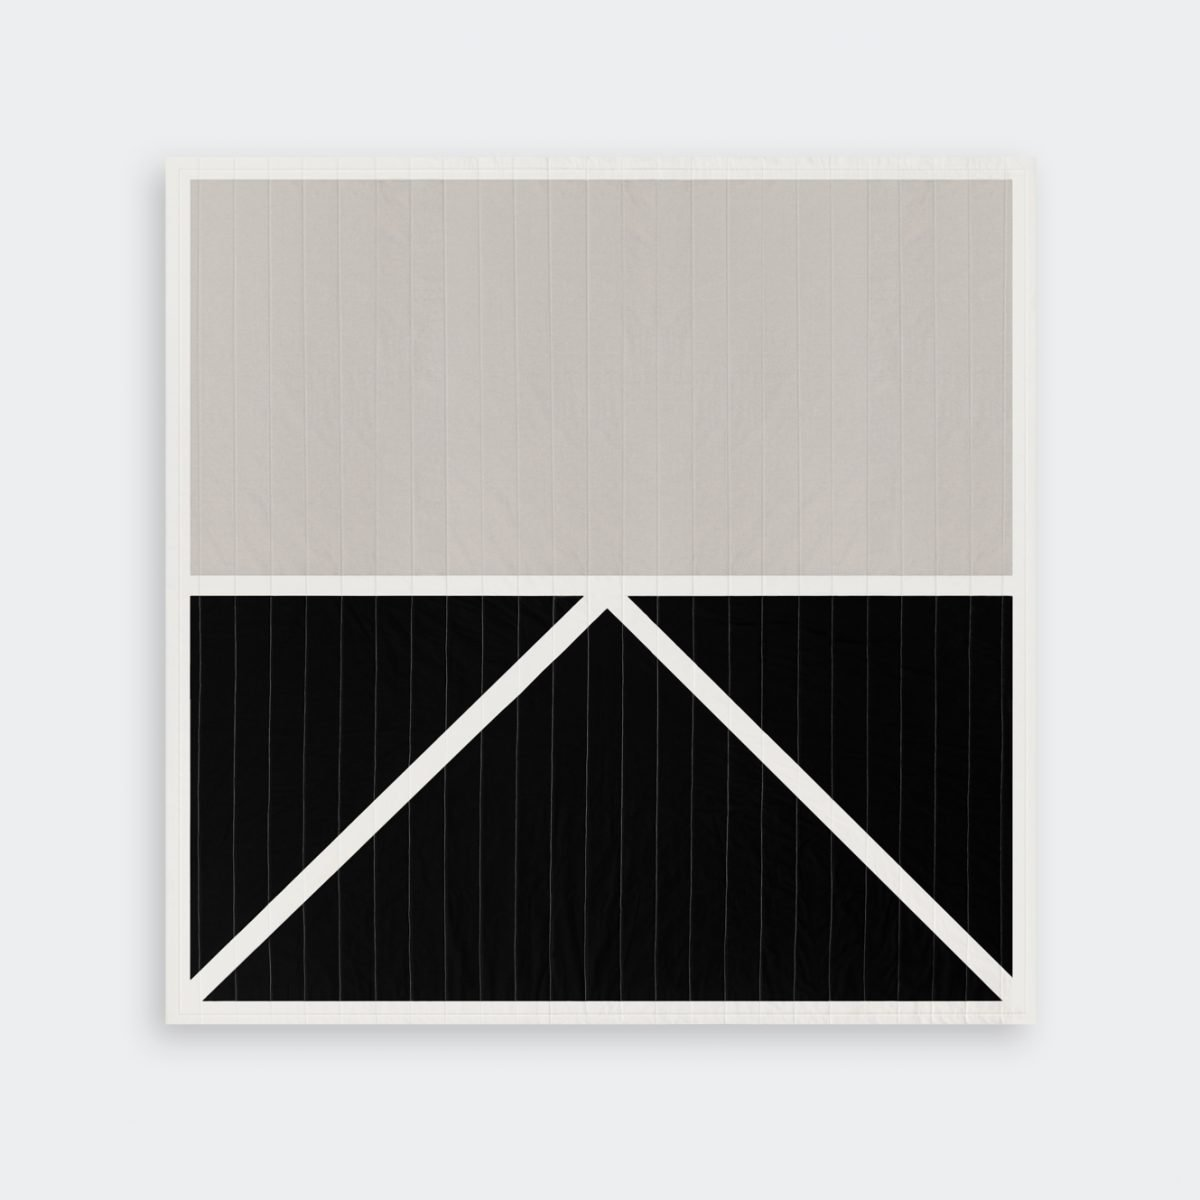 Discover the best louise gray modern quilt no 2 products on Dwell